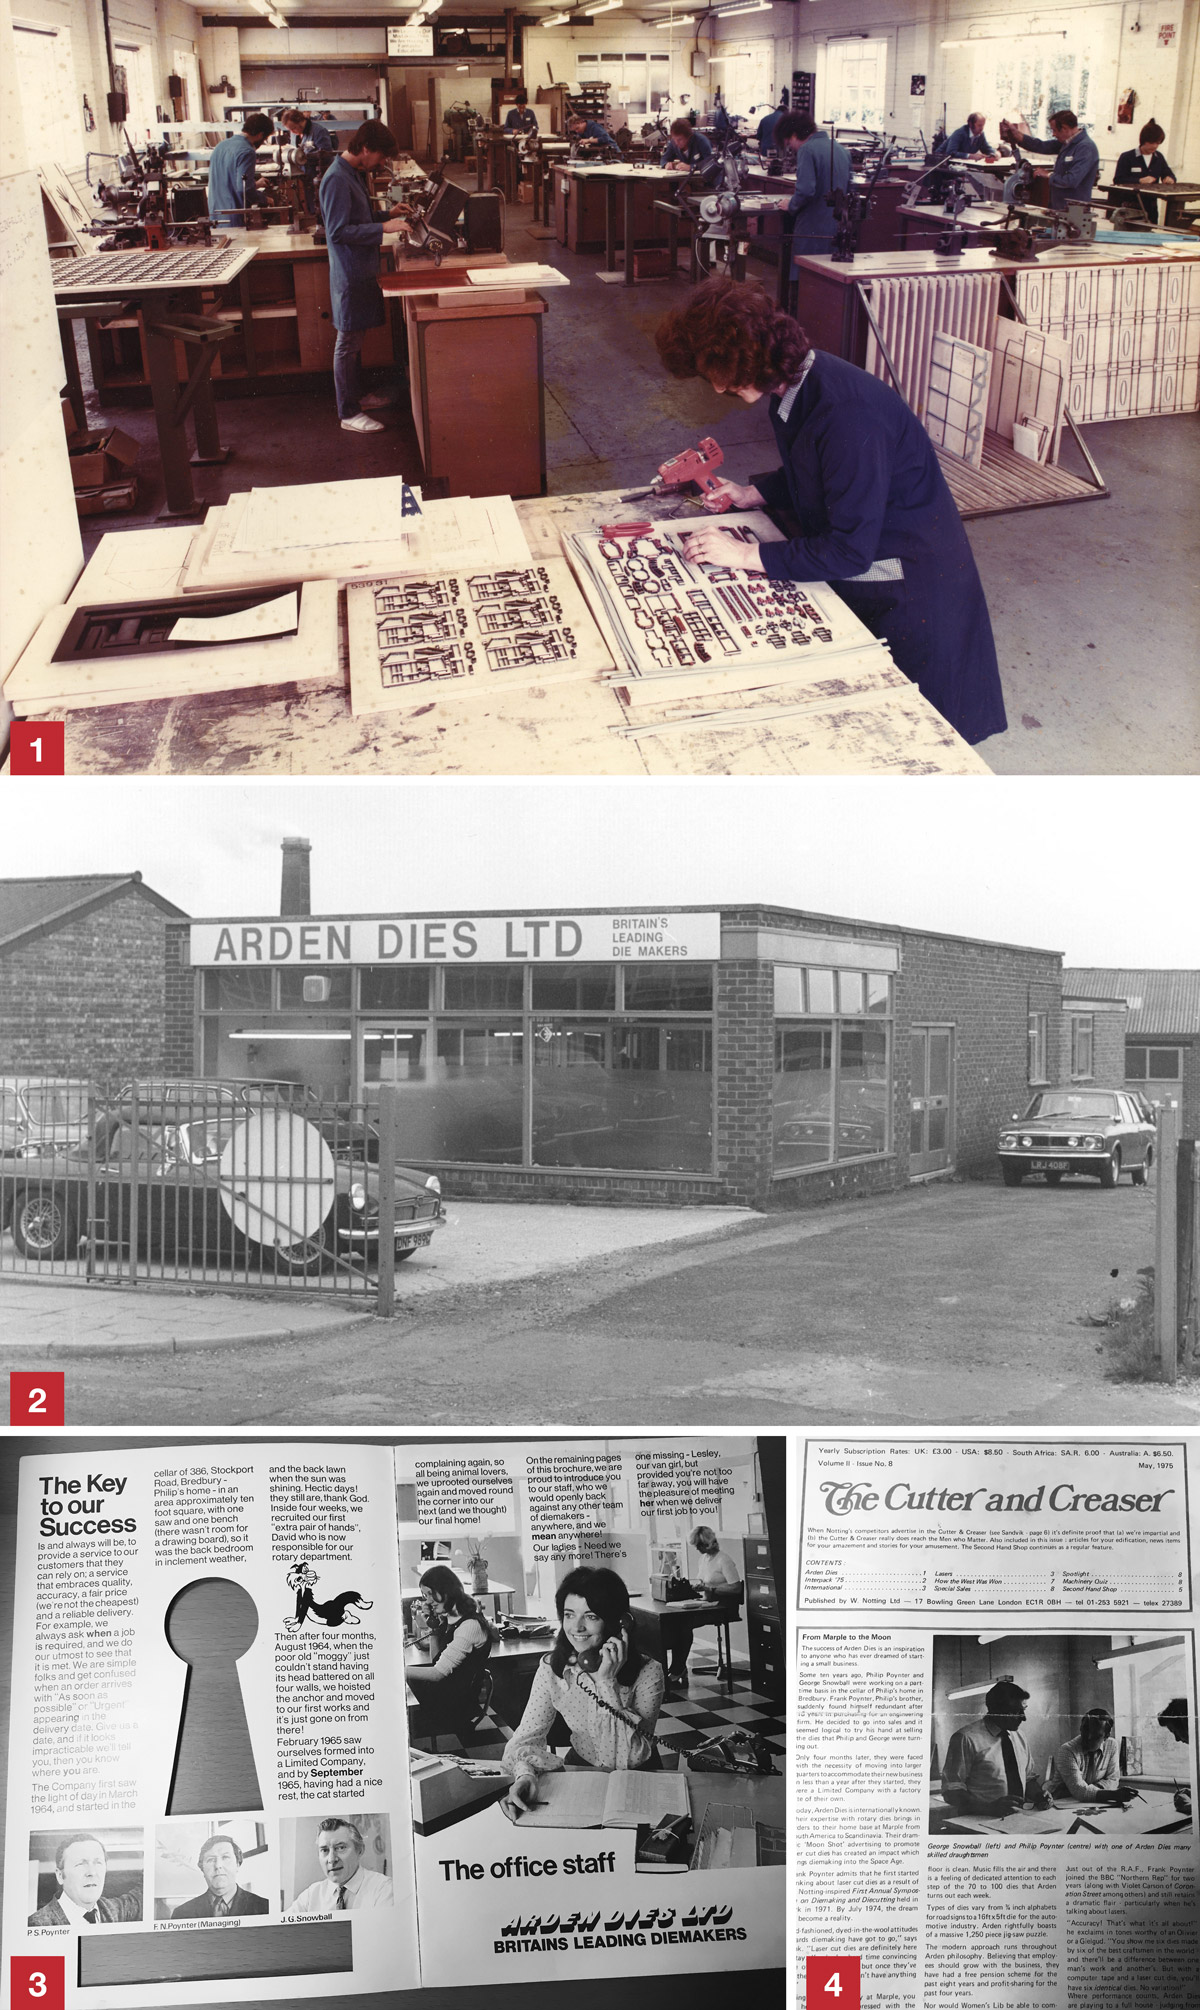 History of Arden and Arden first factory